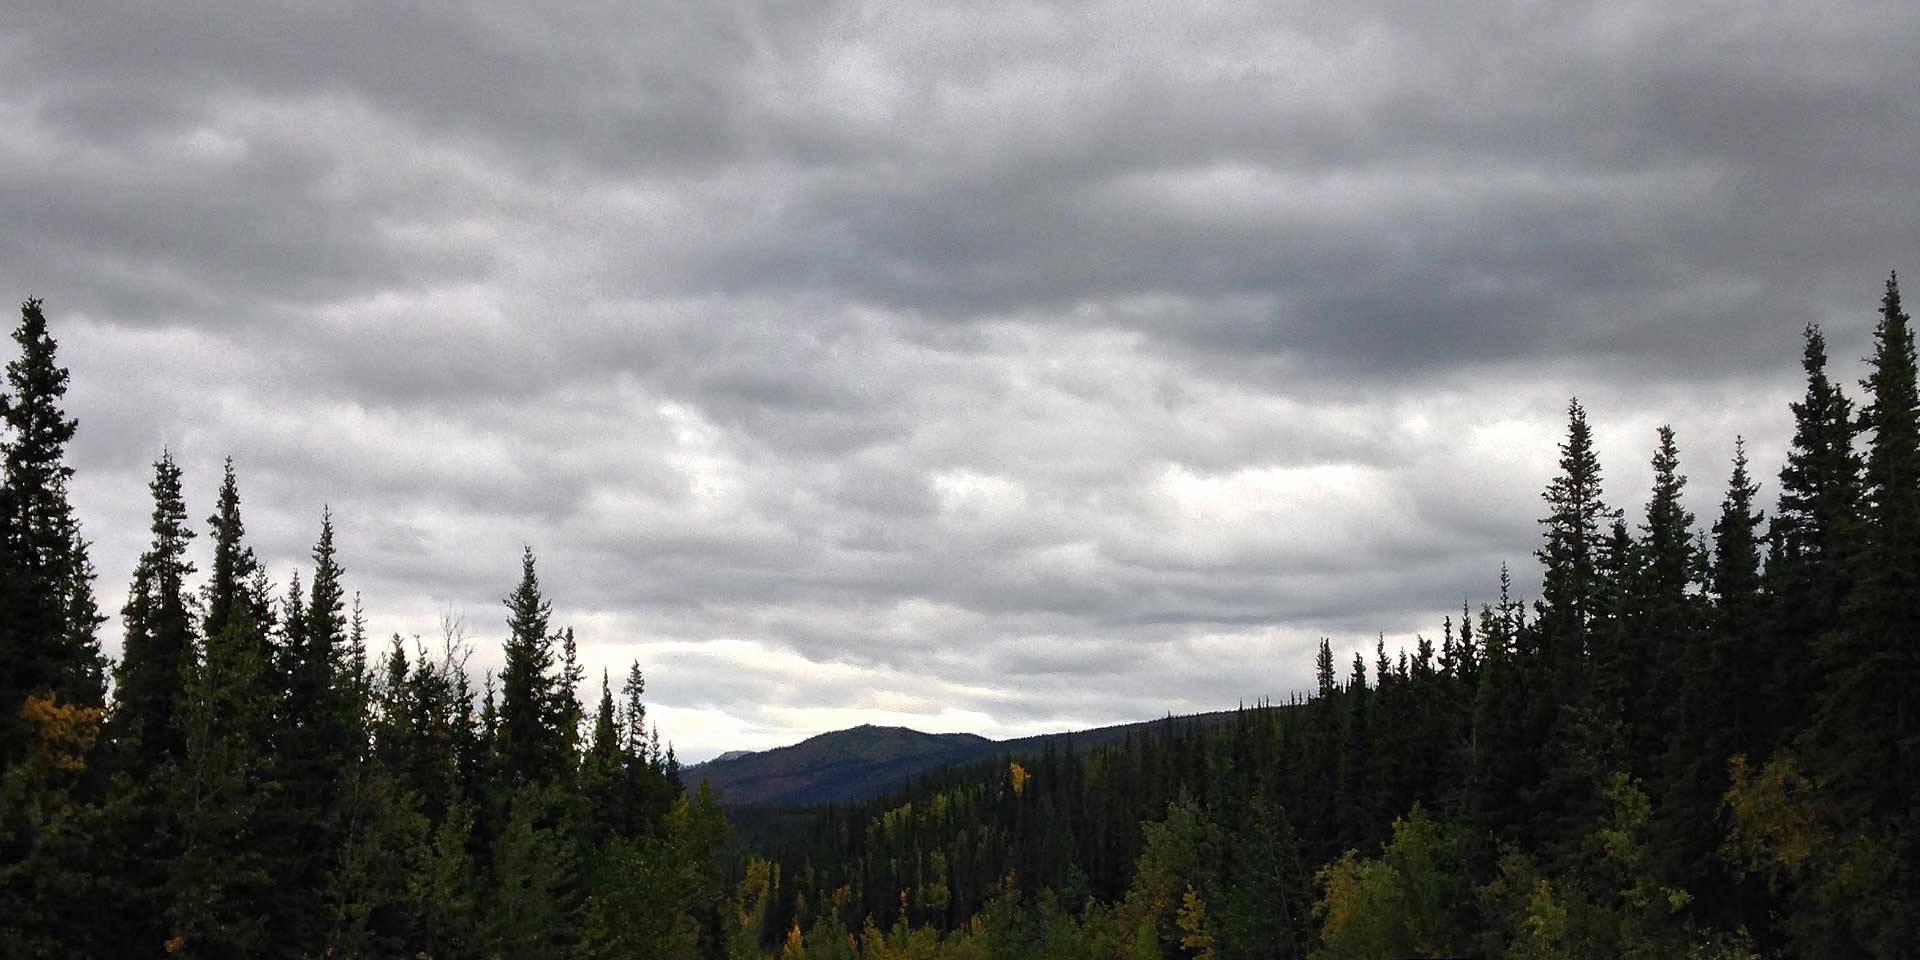 Photograph: Rolling gray clouds block out any hint of blue sky above the pine trees and mountains near the Denali National Park visitors' center.